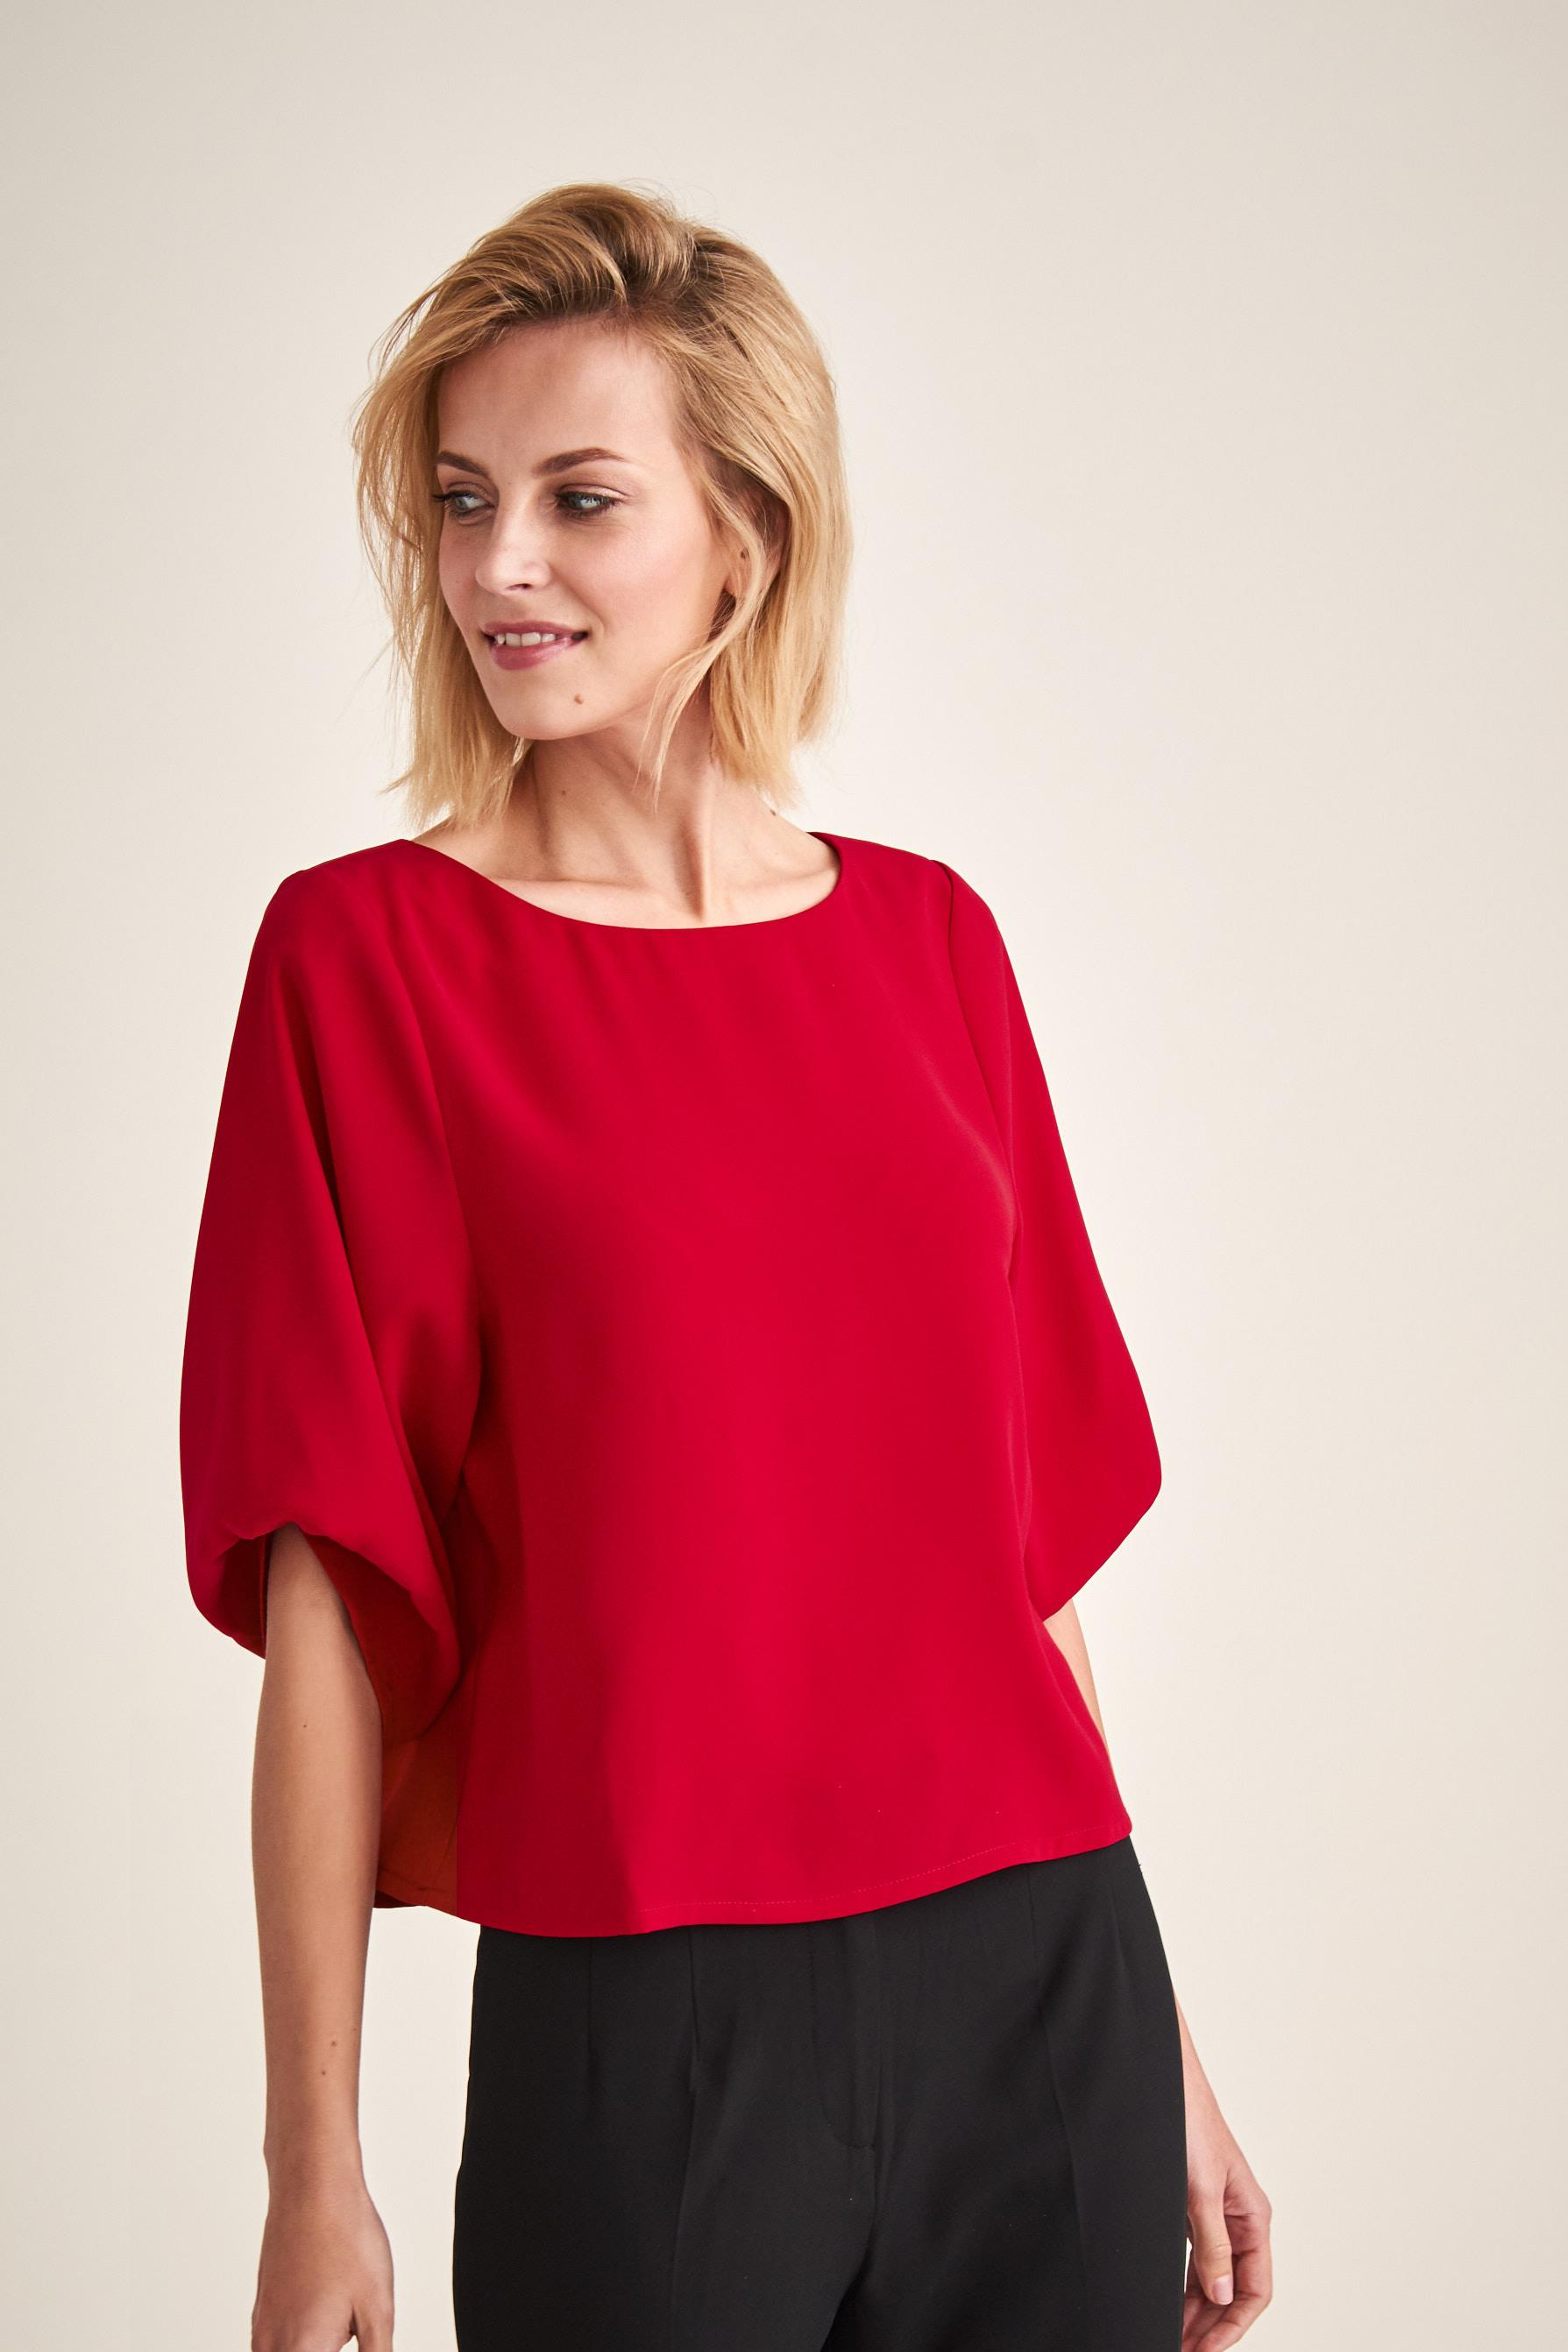 EVENING BLOUSE WITH PULLED UP SLEEVES LAMA